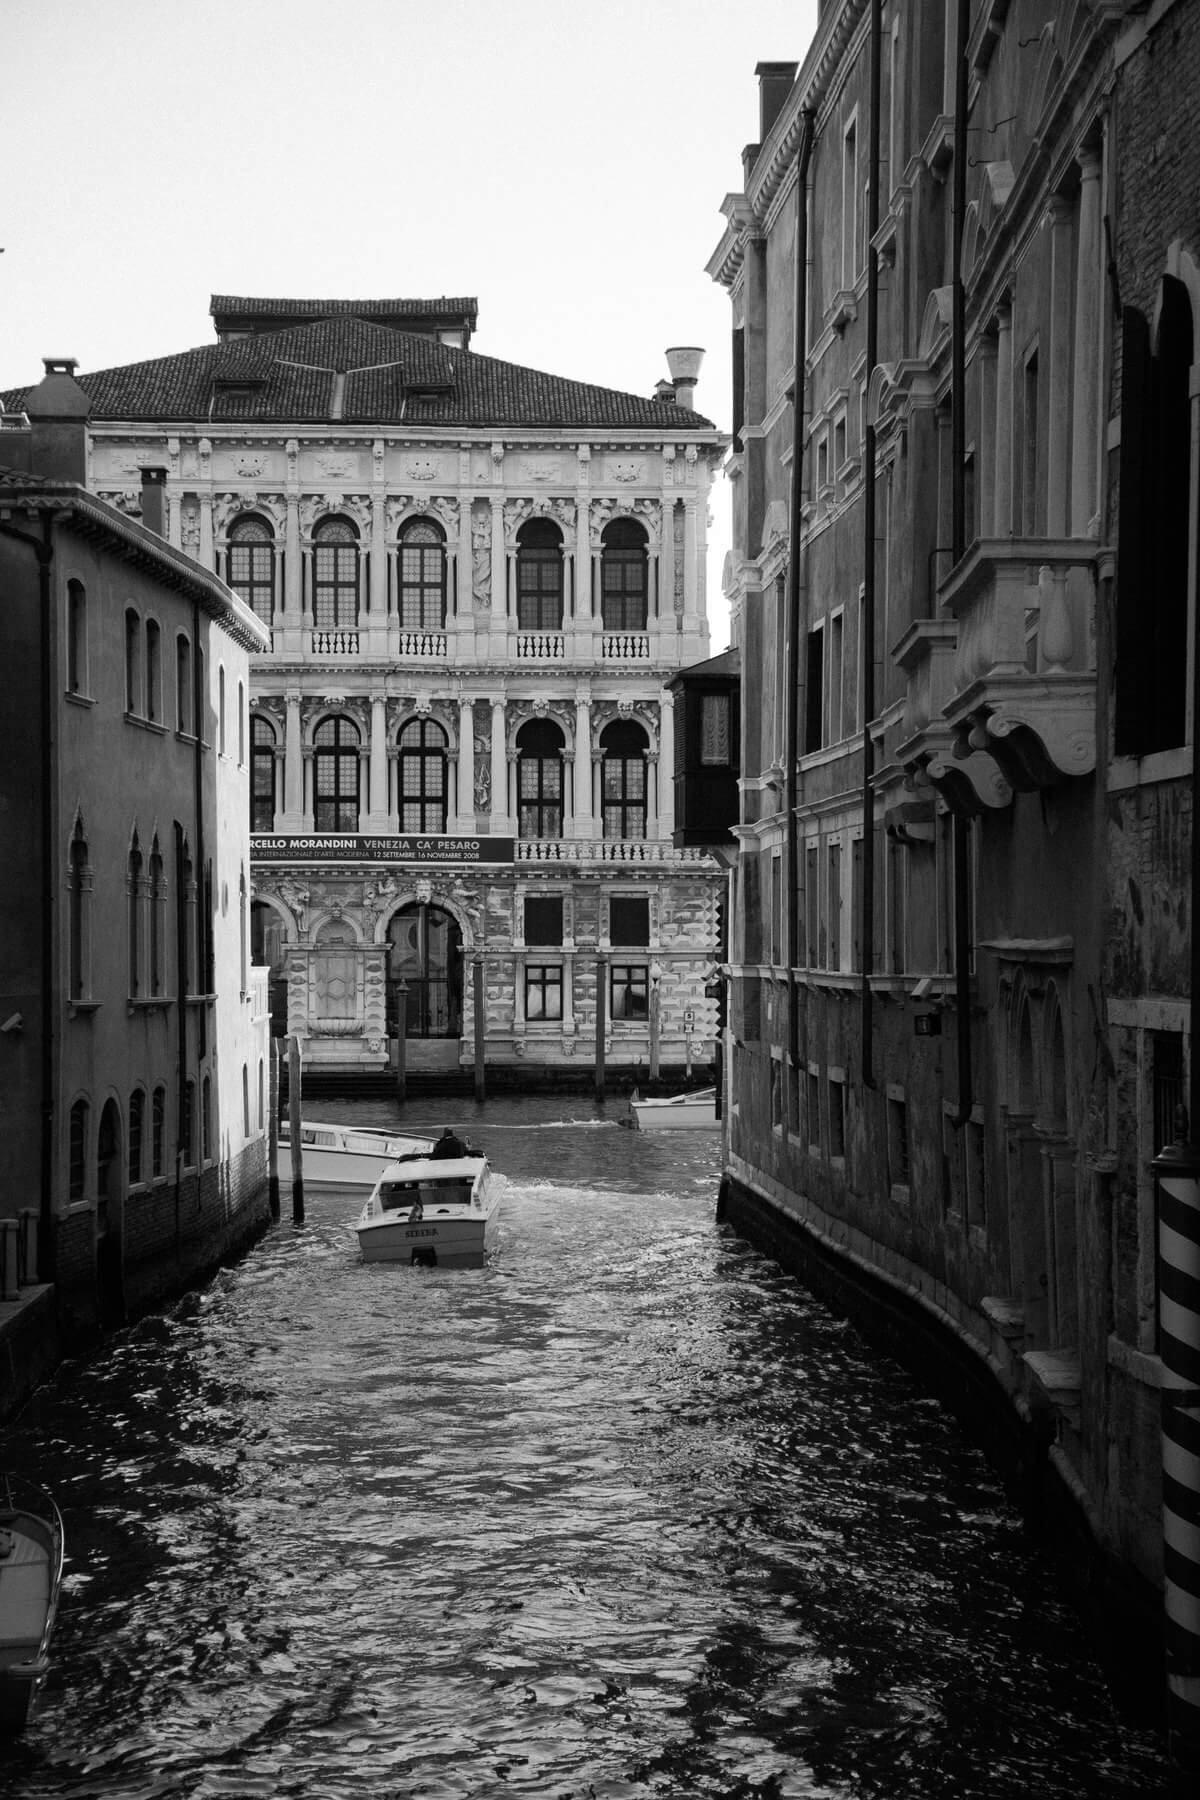 Venice-Italy-black-and-white-fine-art-photography-by-Studio-L-photographer-Laura-Schneider-_3841